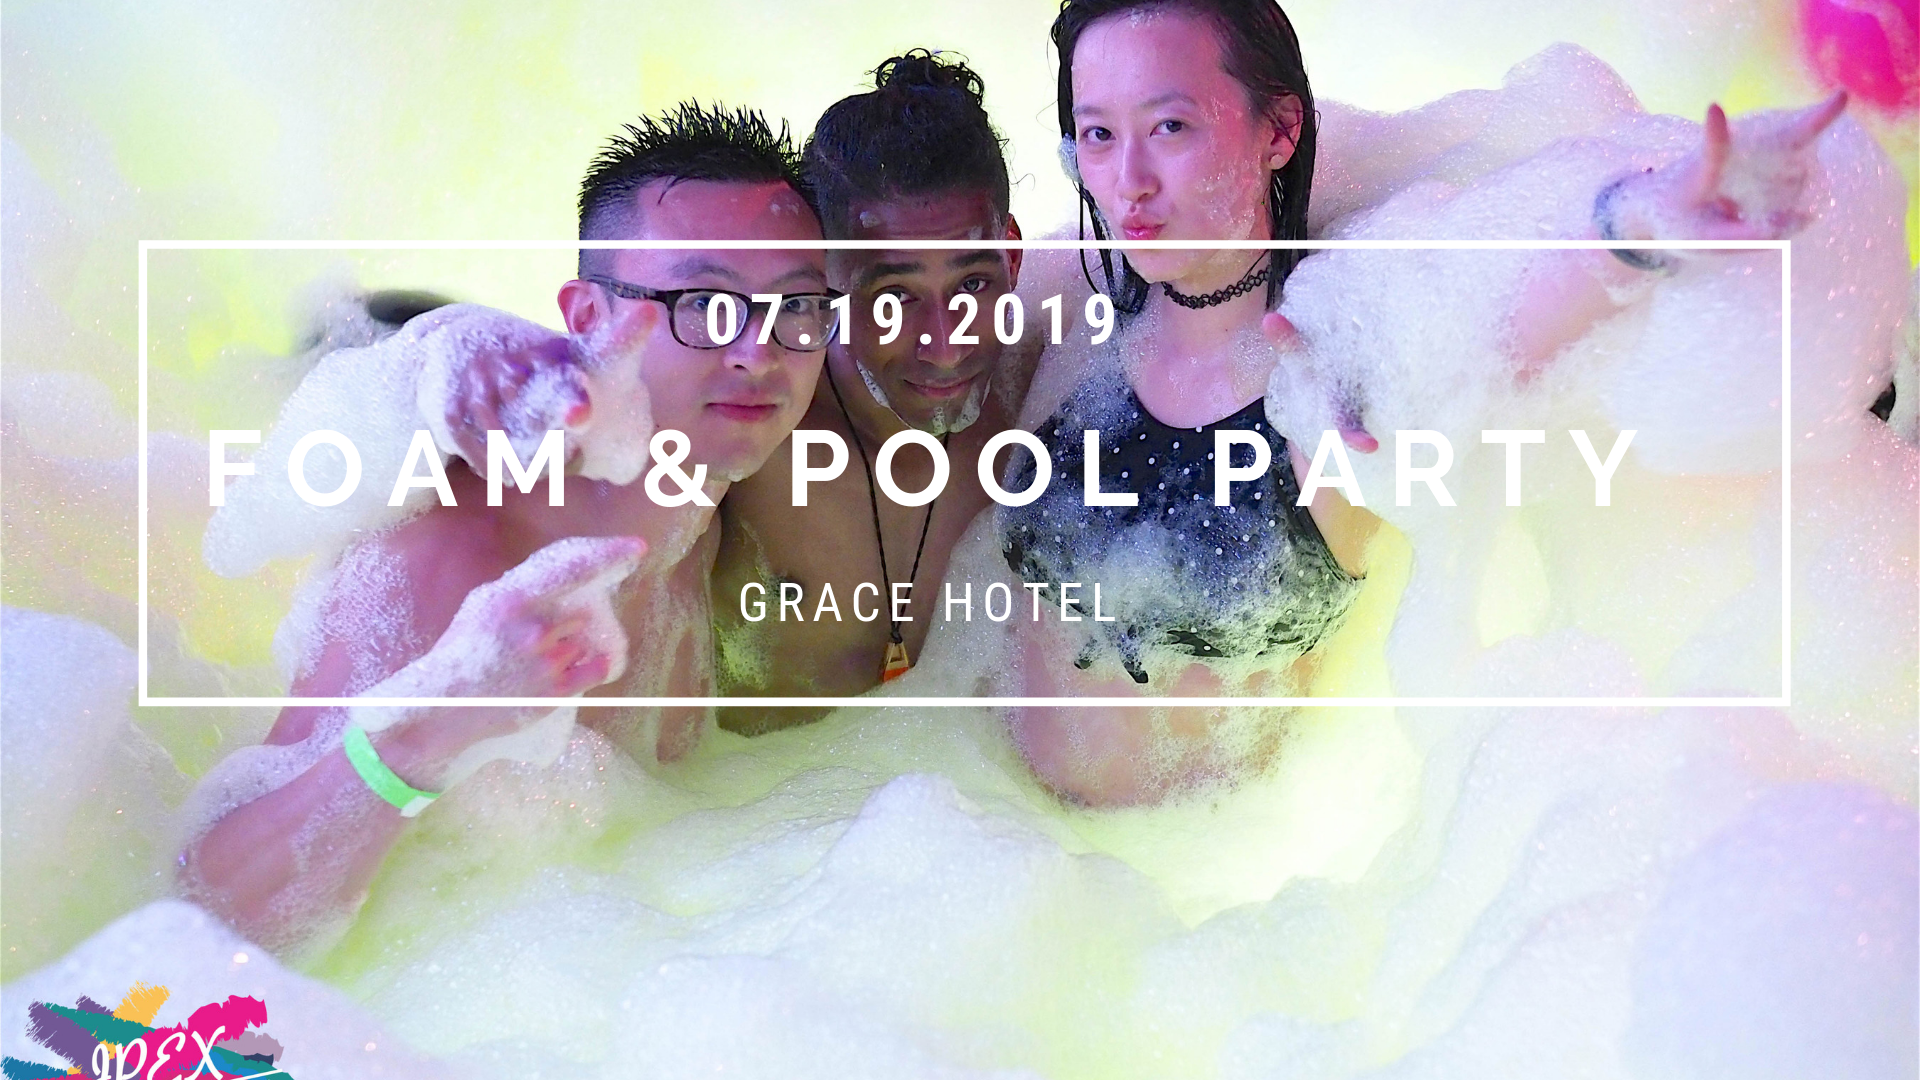 Foam & POOL party.png